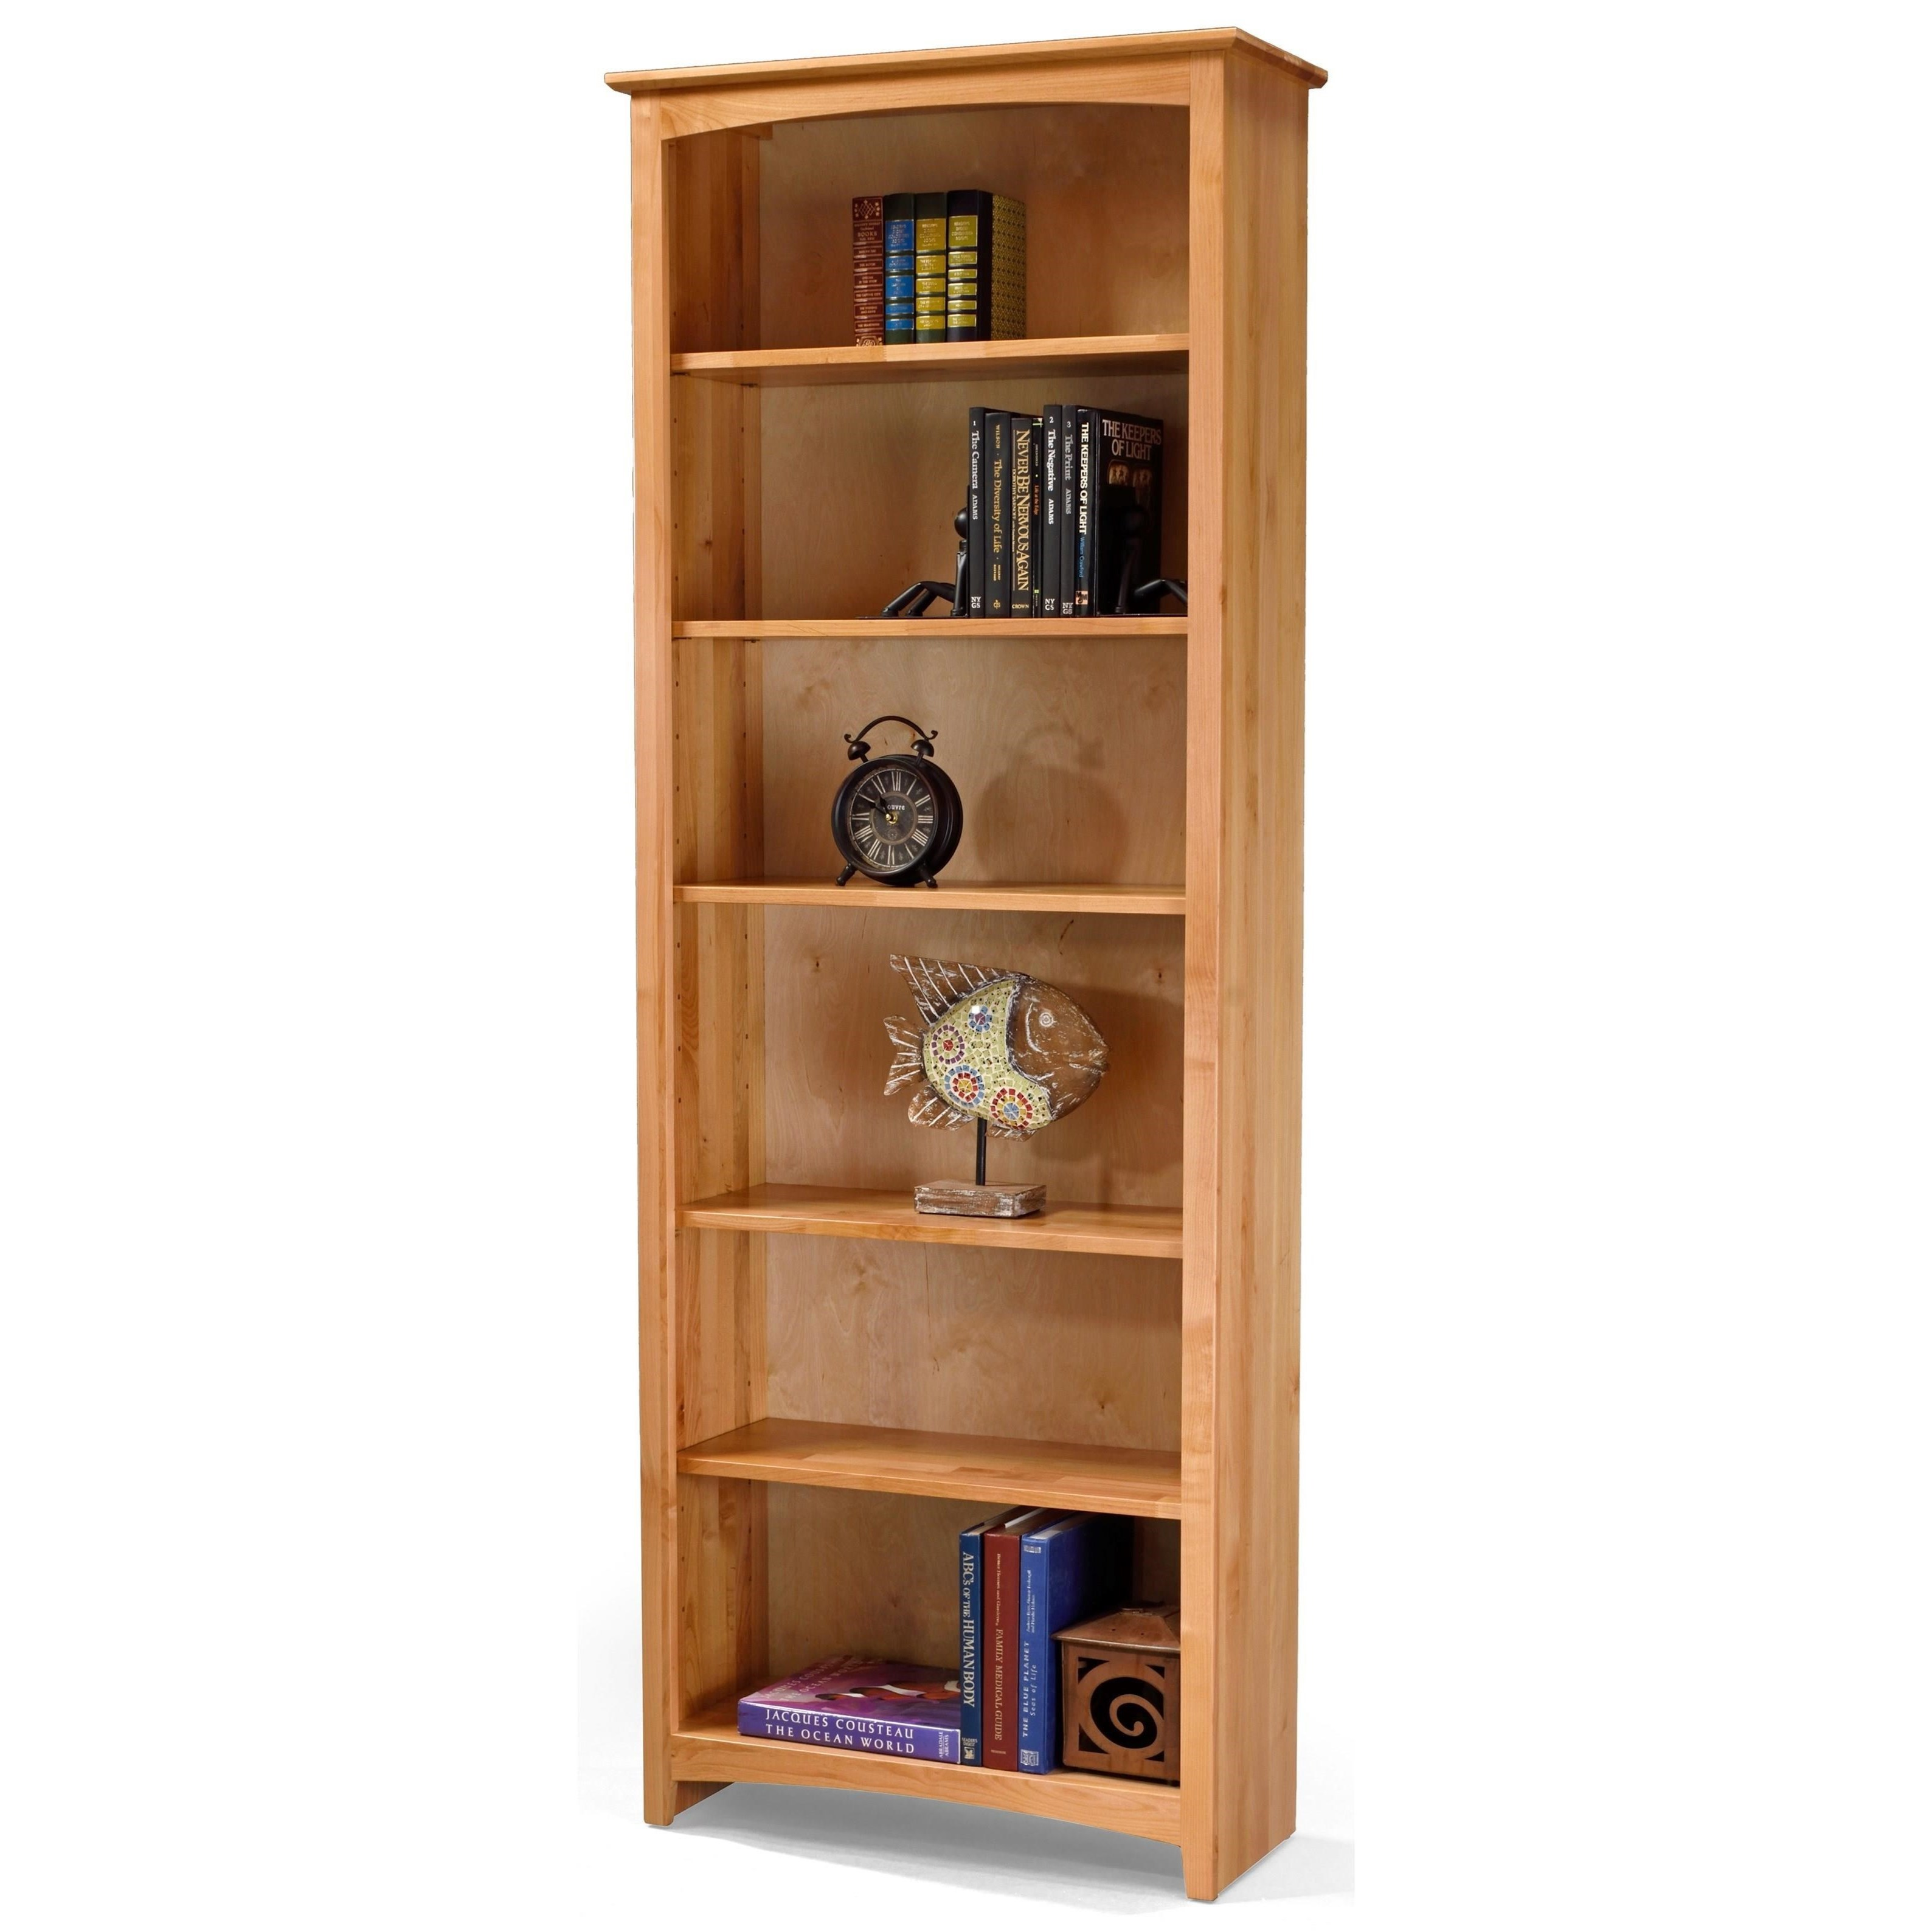 Bookcases Alder Bookcase by Archbold Furniture at Furniture and ApplianceMart